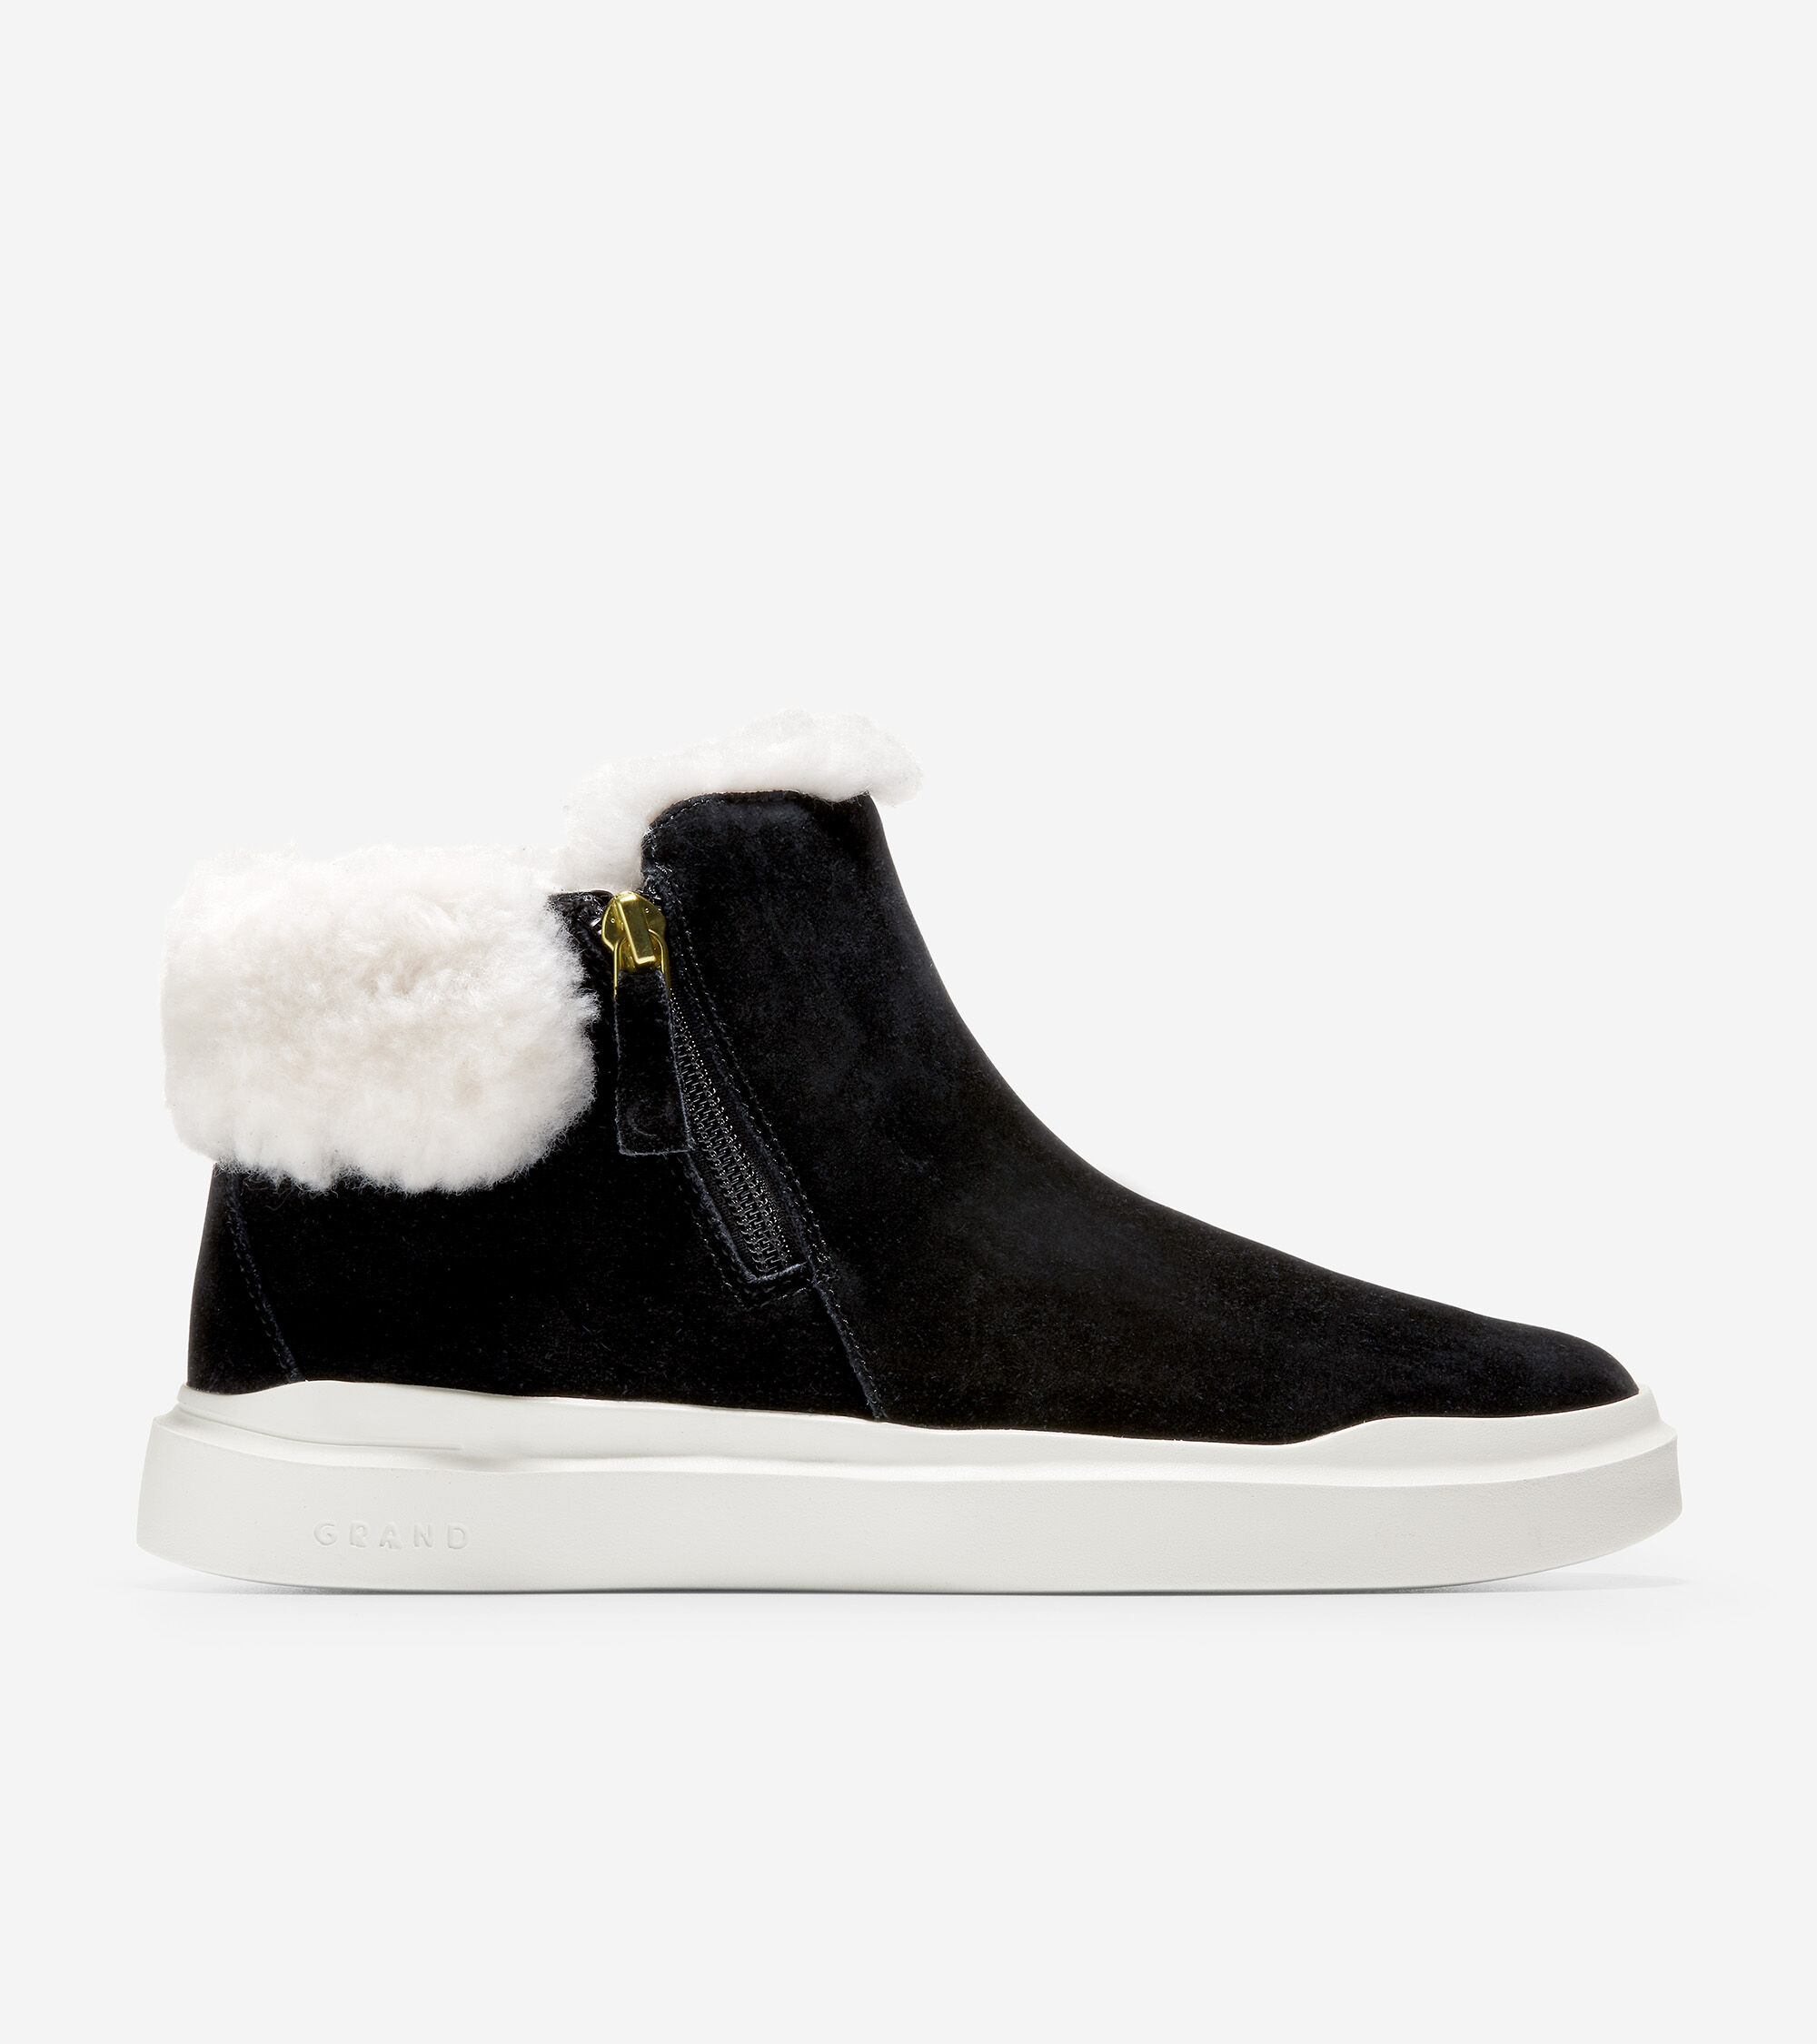 Waterproof suede uppers with a faux-shearling lining. Side-zip closure. Welt detailing. Ortholite® foam footbed for ultimate comfort and breathability. Lightweight EVA cupsole with textured outsole for added traction.